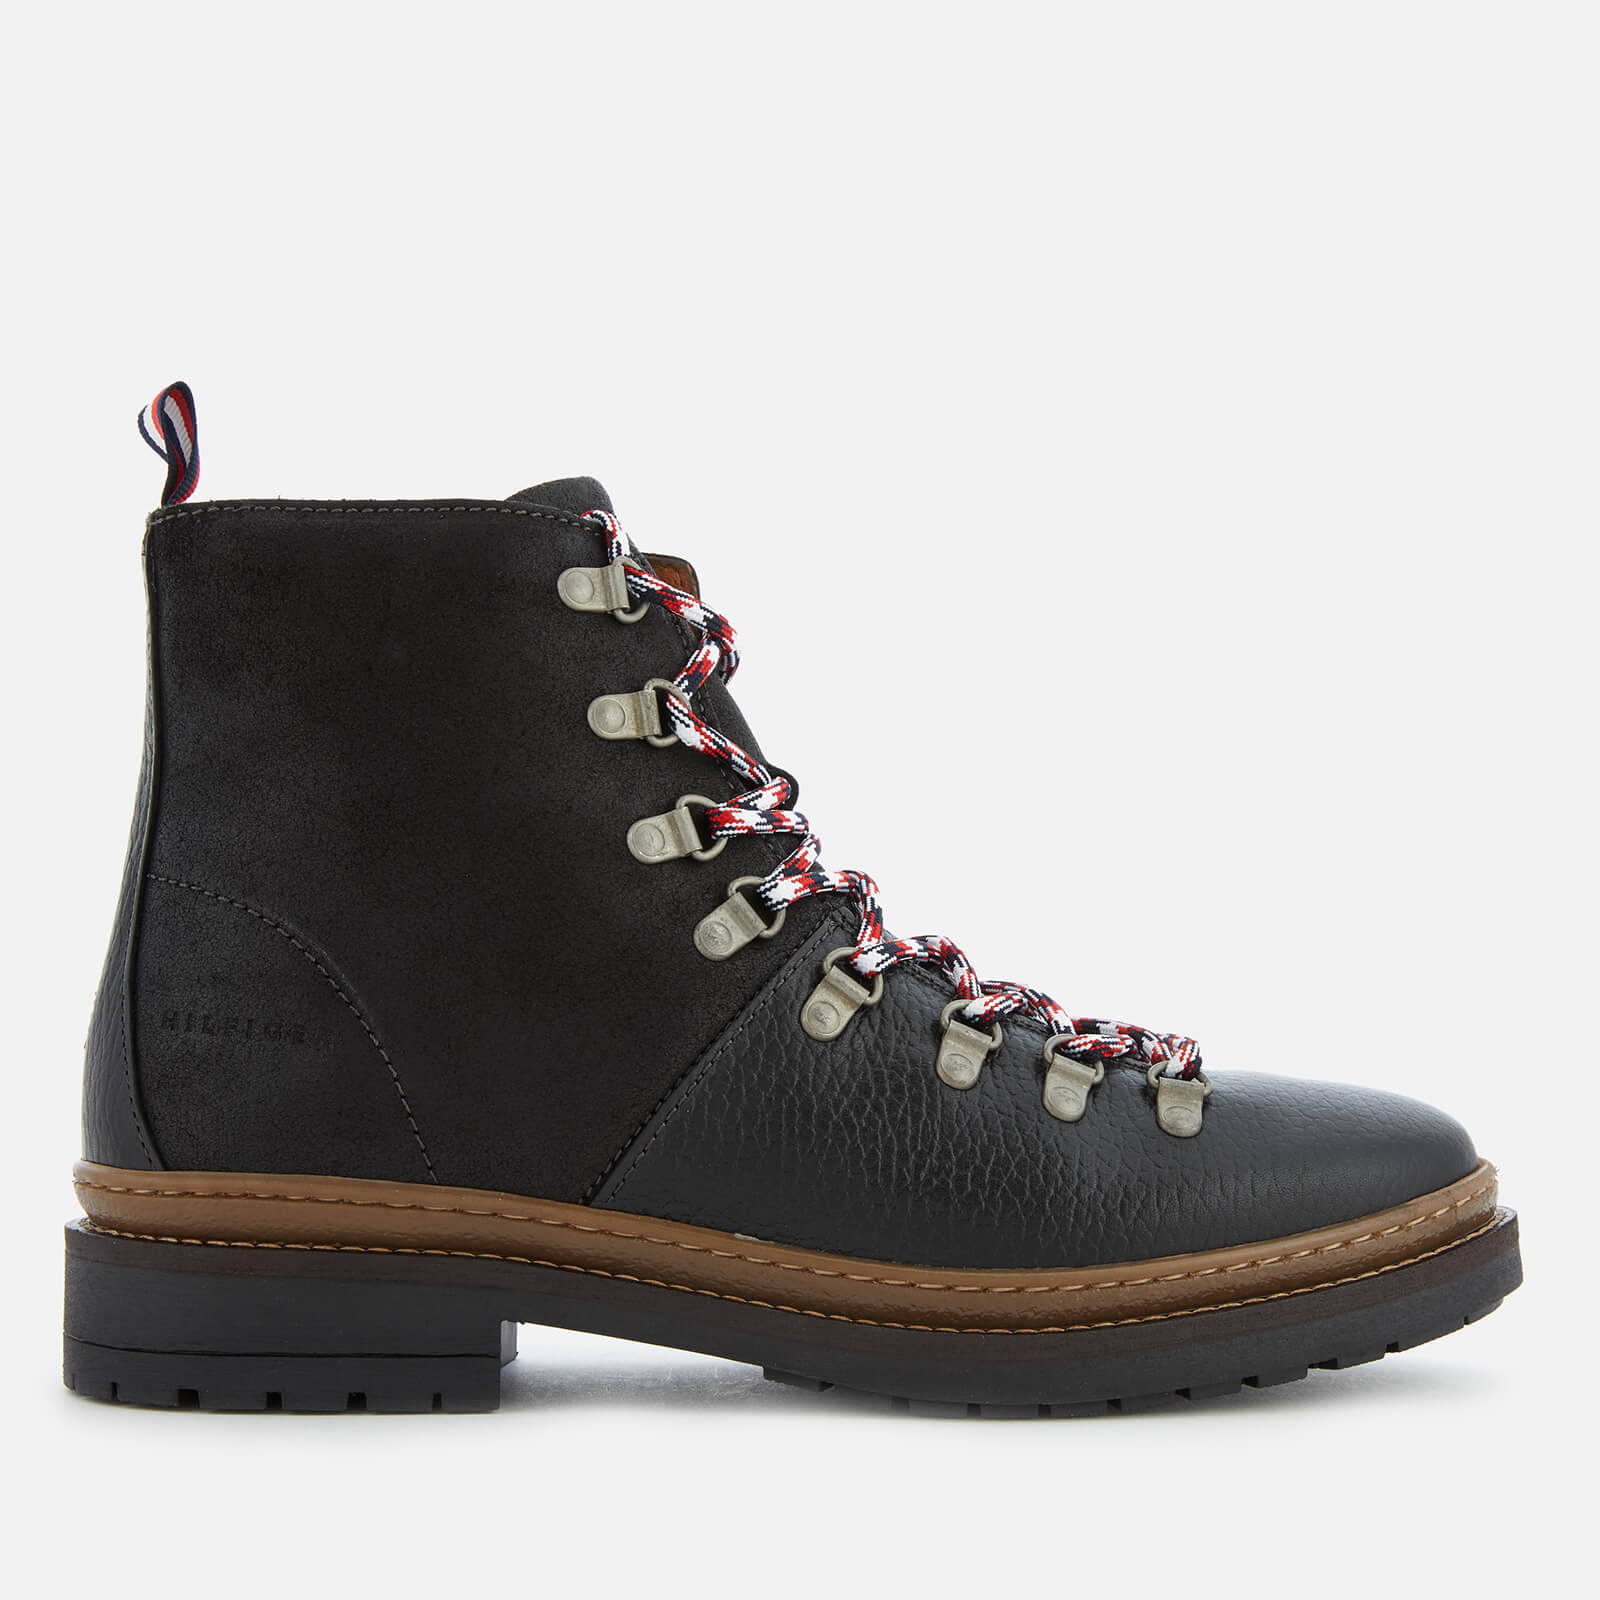 ab435ea5d Tommy Hilfiger Men s Elevated Outdoor Leather Hiking Boots - Black Mens  Footwear